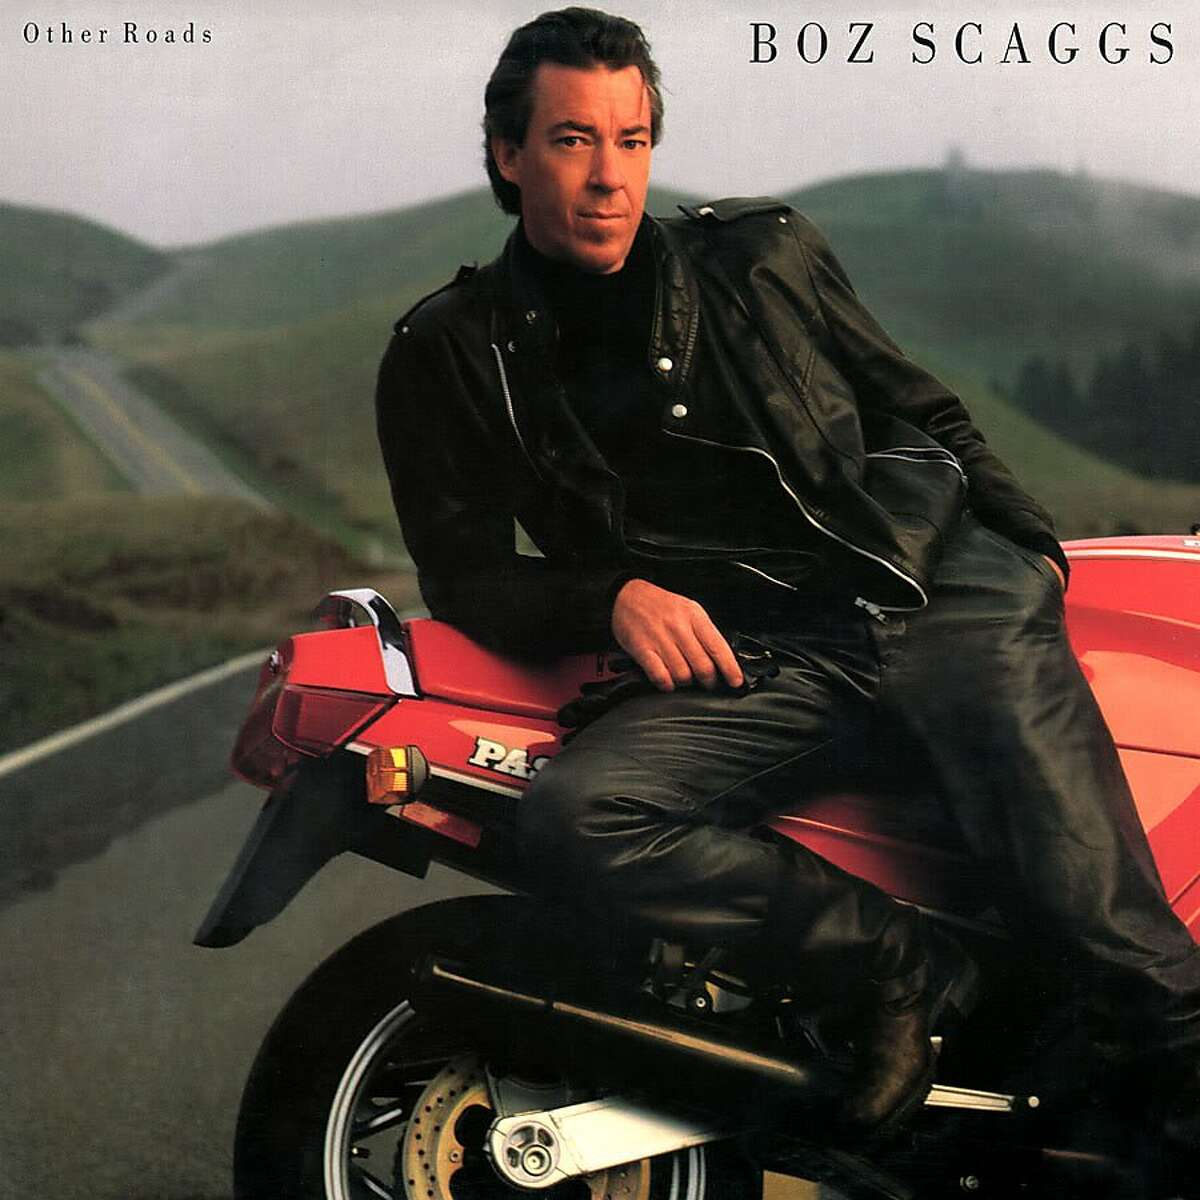 """Boz Scaggs: """"Other Roads"""""""